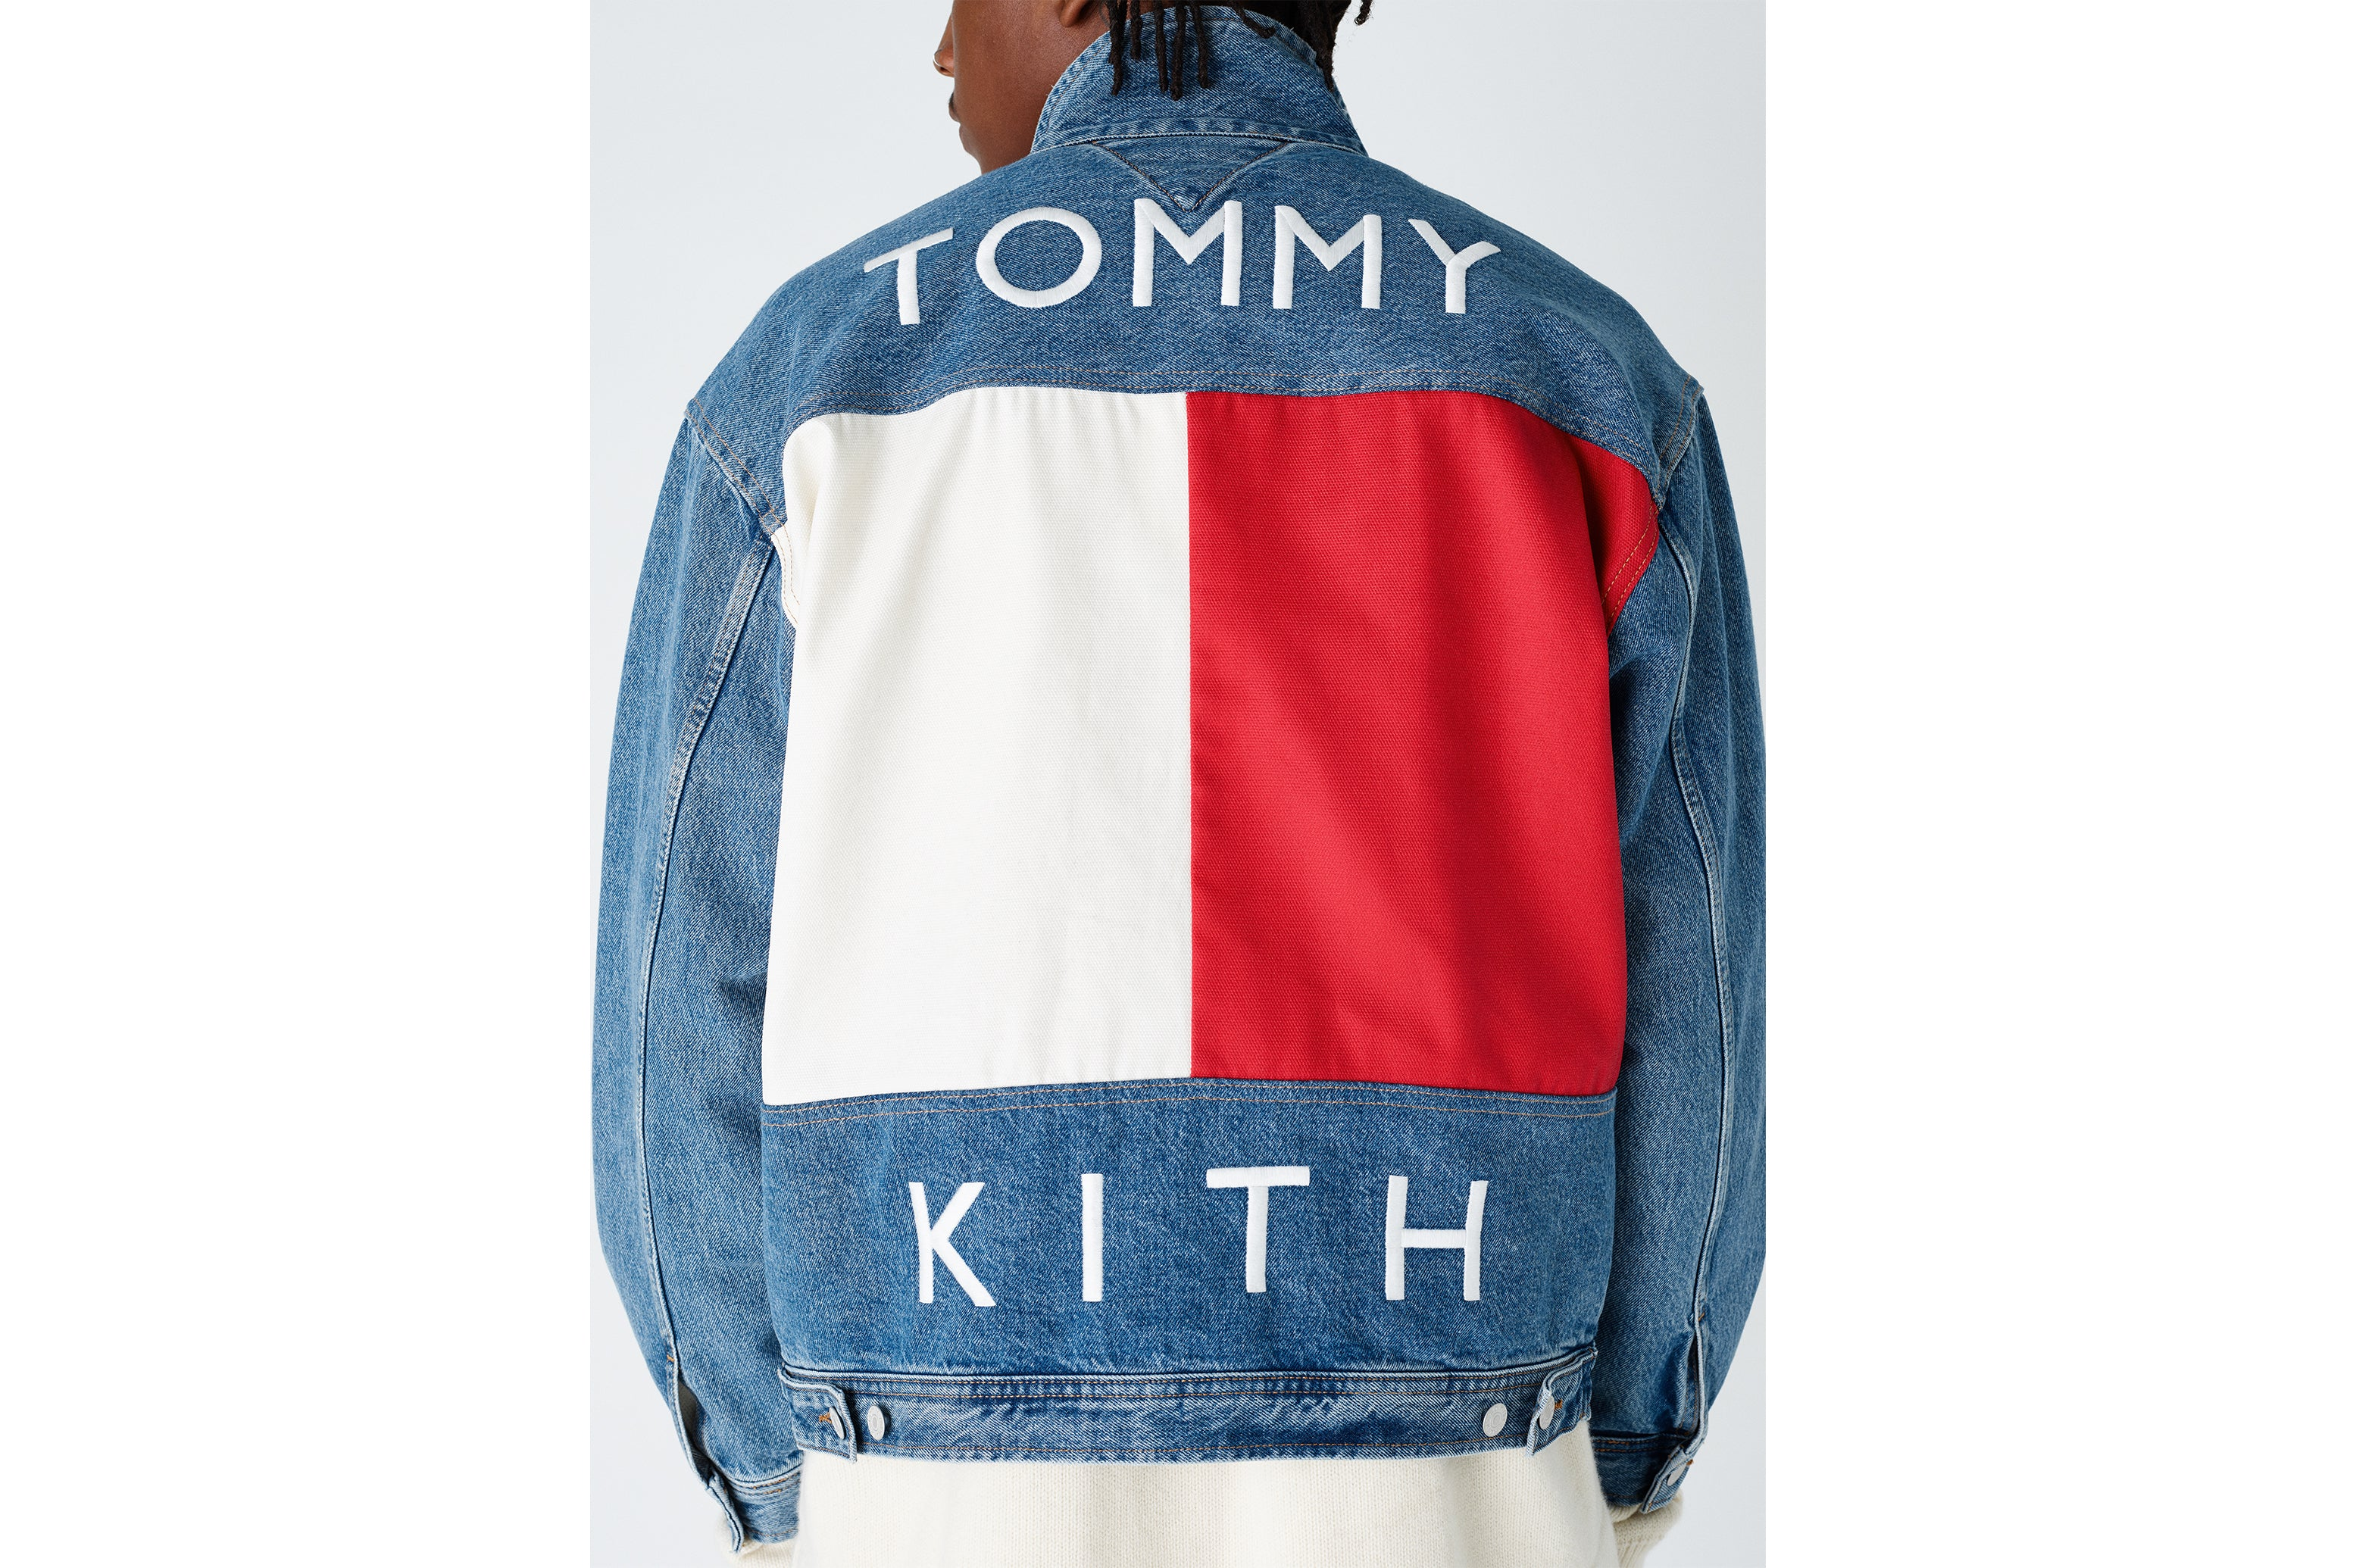 927a88f9c Kith x Tommy Hilfiger FW18 Lookbook. September 04, 2018. -28. -1